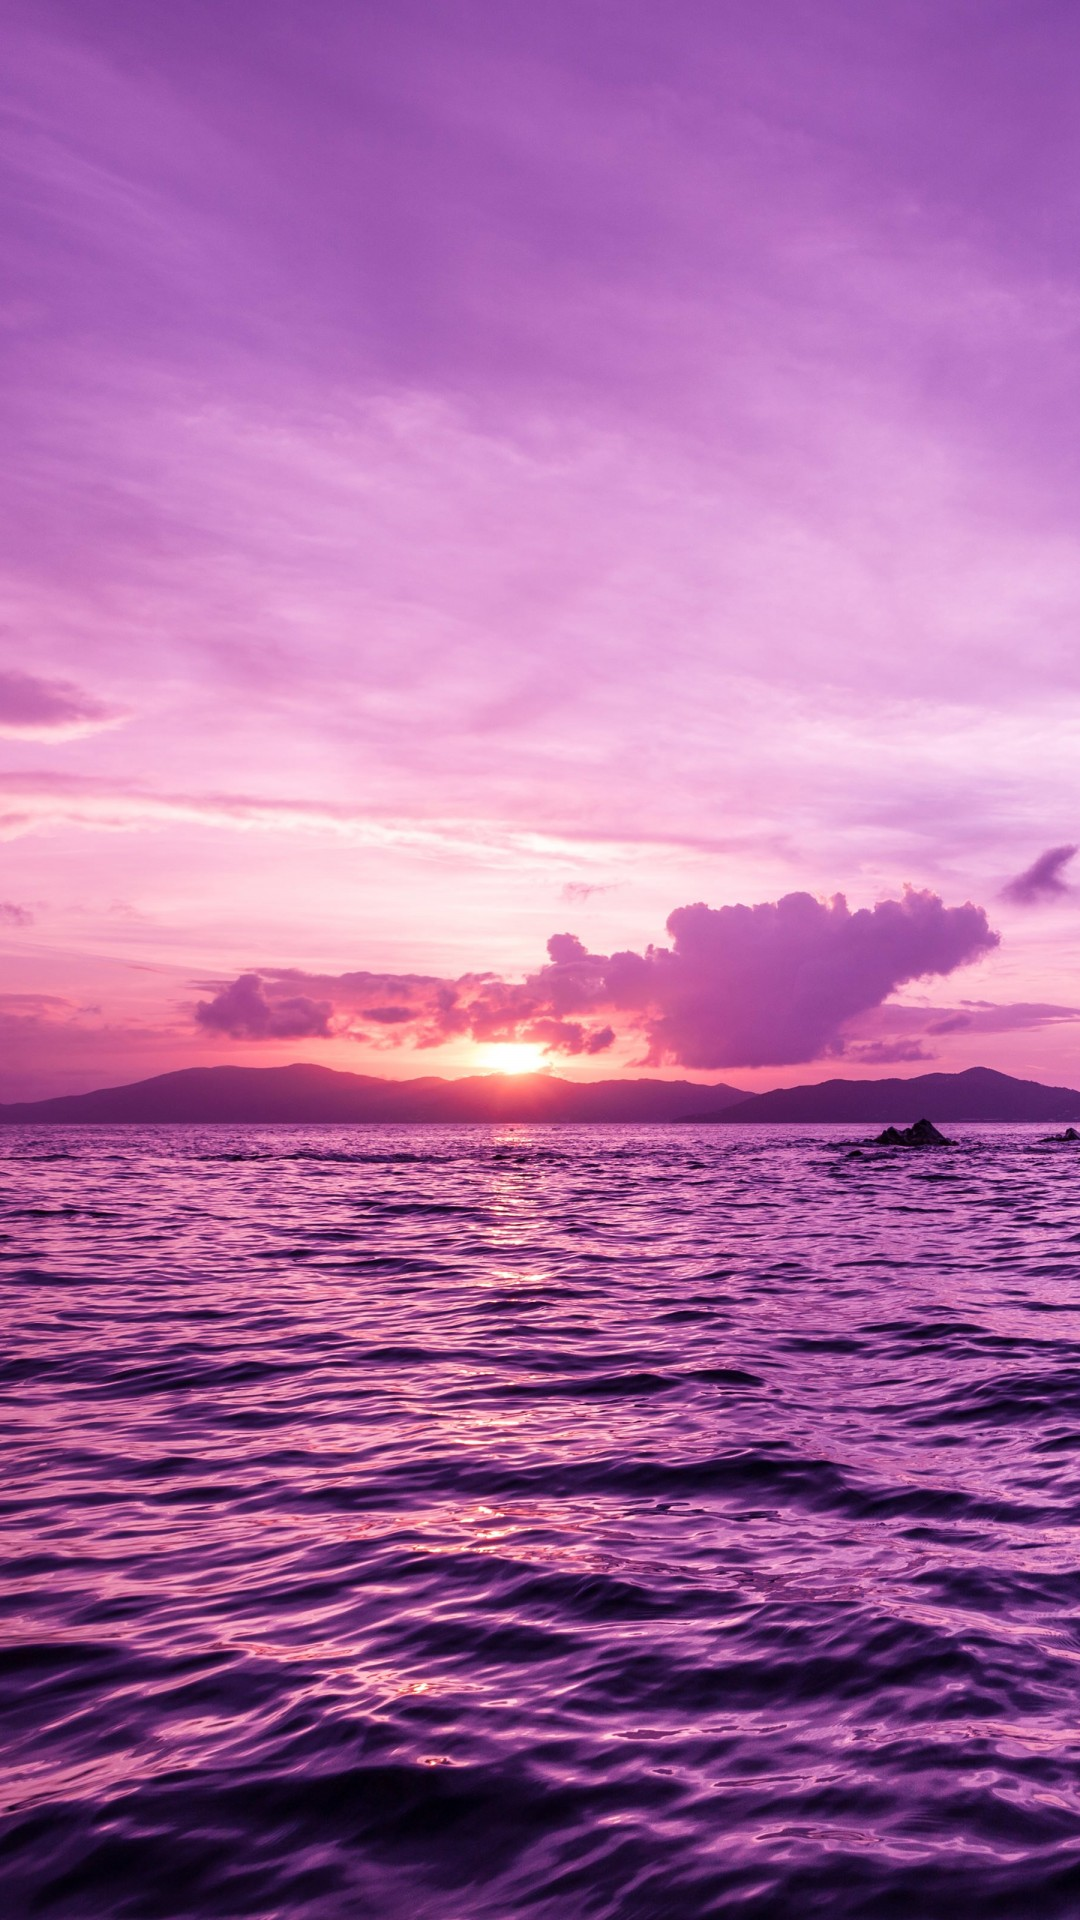 Pelican Island Sunset, British Virgin Islands Wallpaper for LG G2